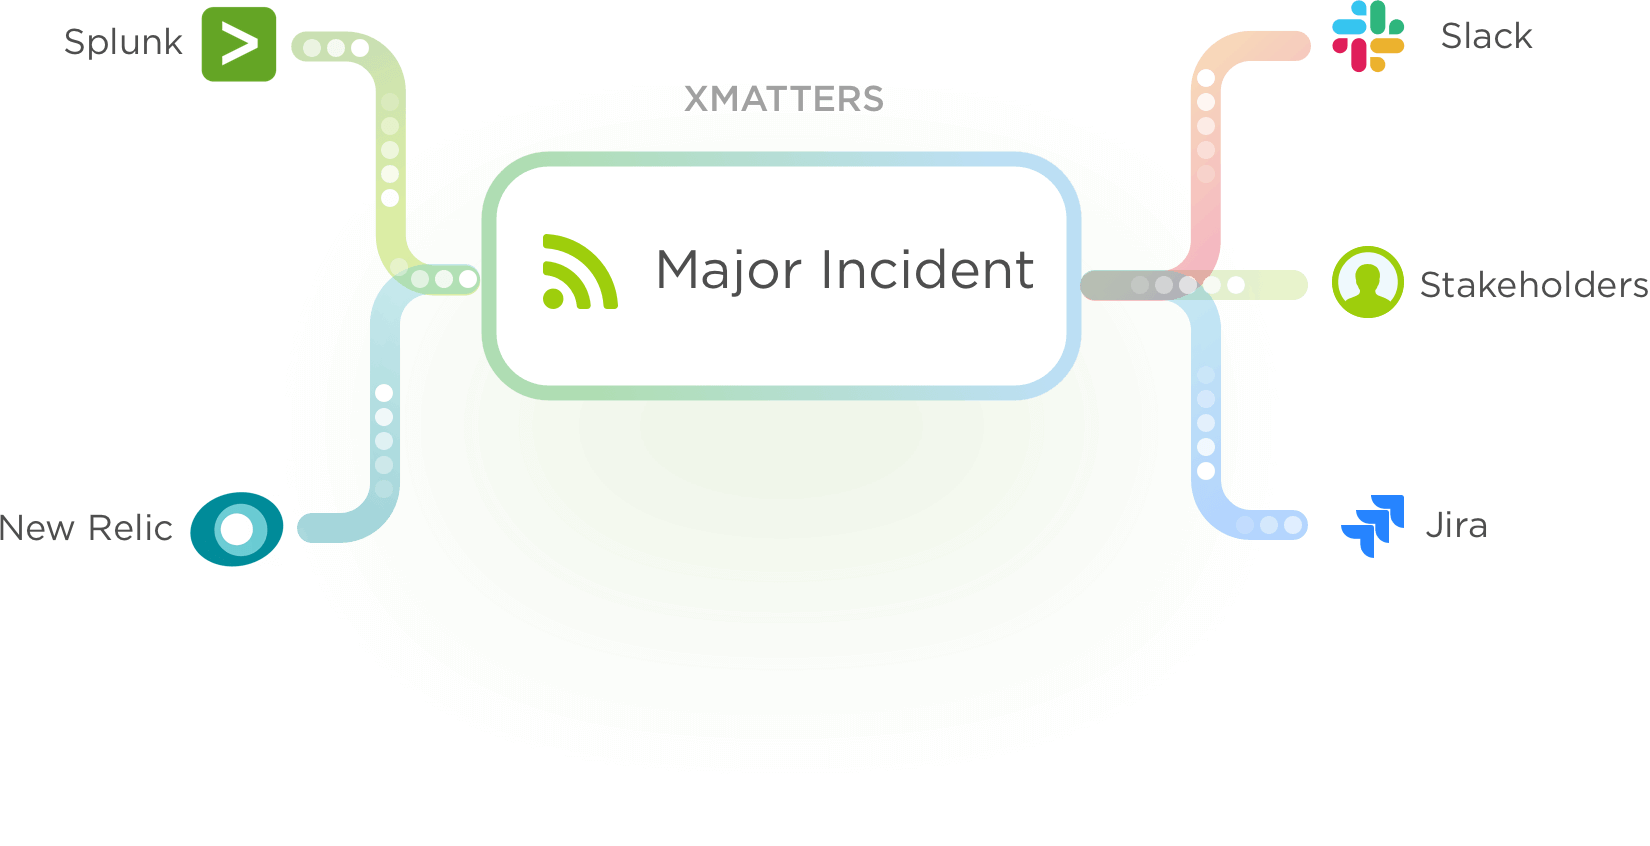 Keep all the stakeholders and apps in your toolchain updated during incidents